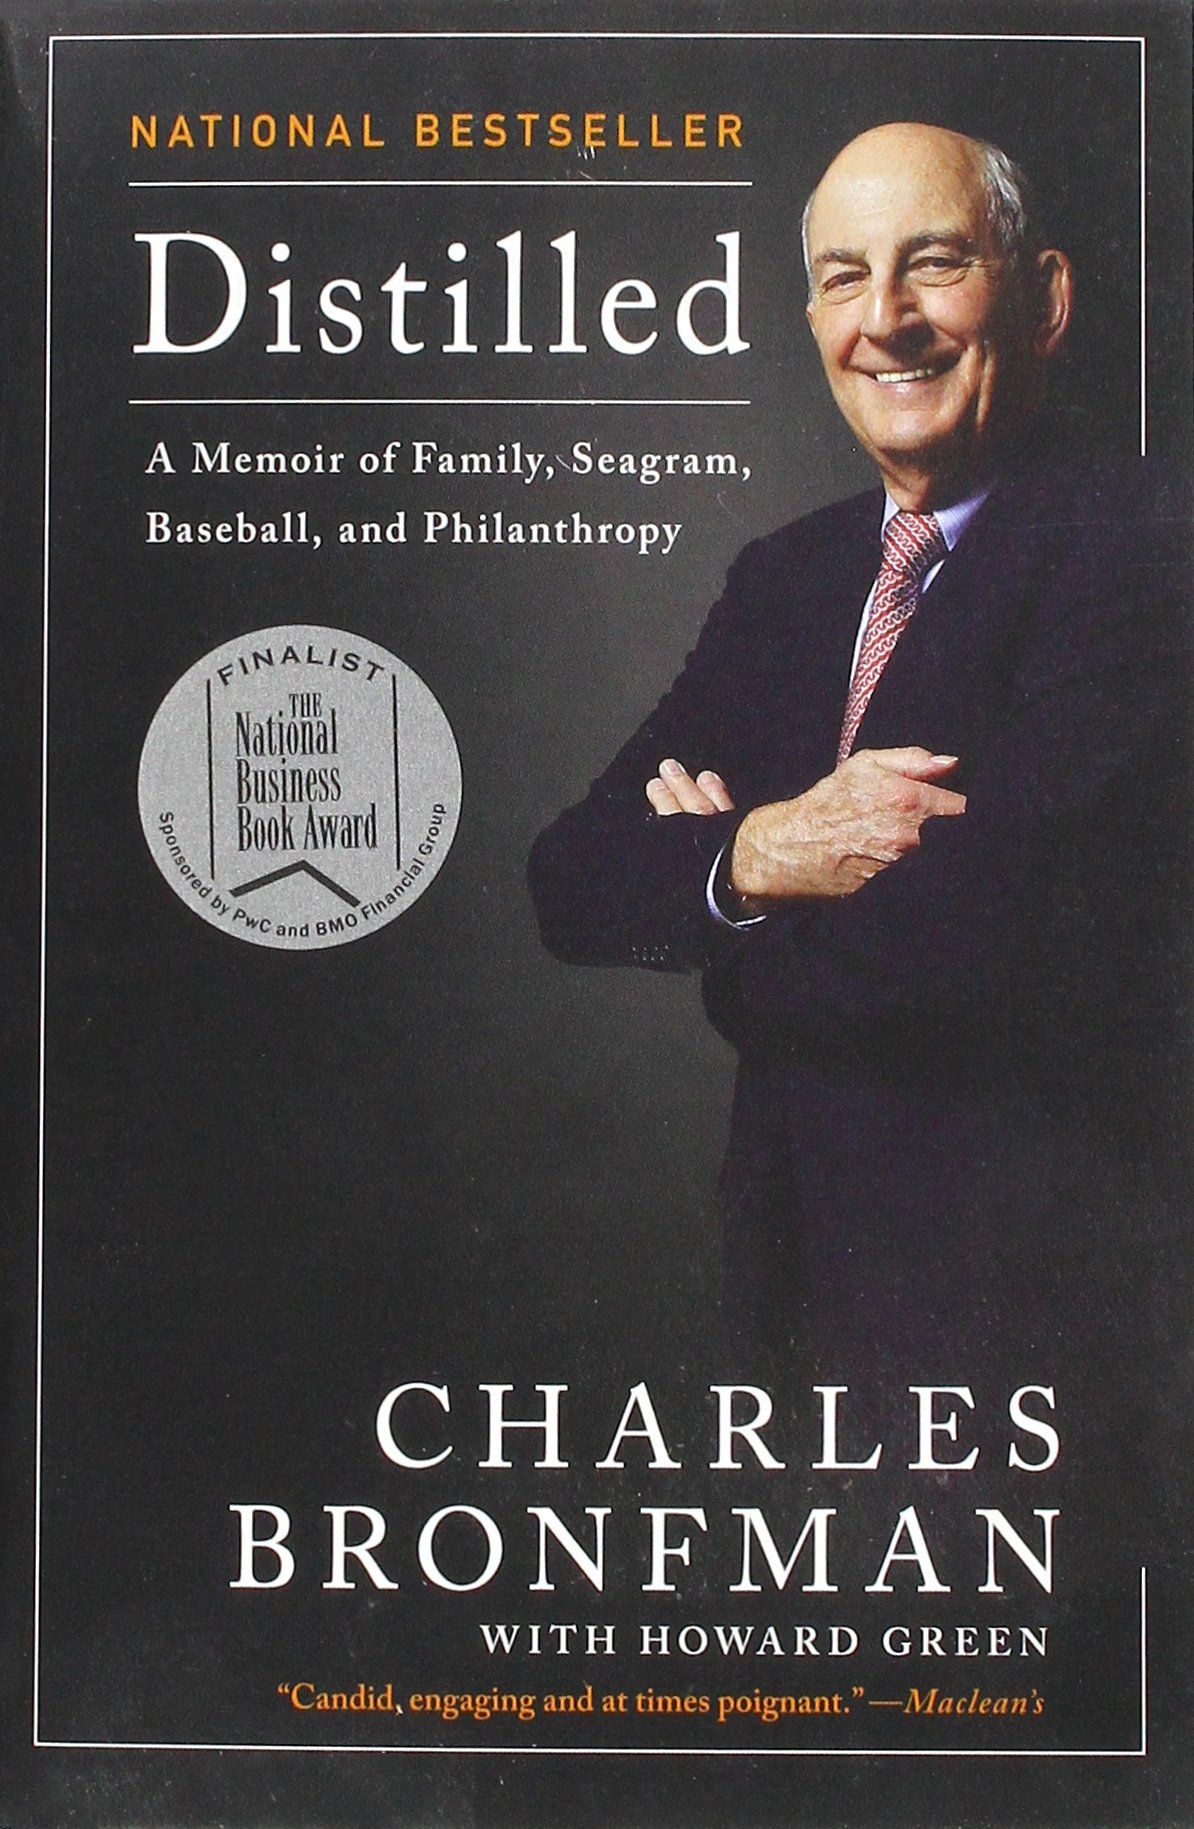 Buy Distilled: A Memoir of Family, Seagram, Baseball, and